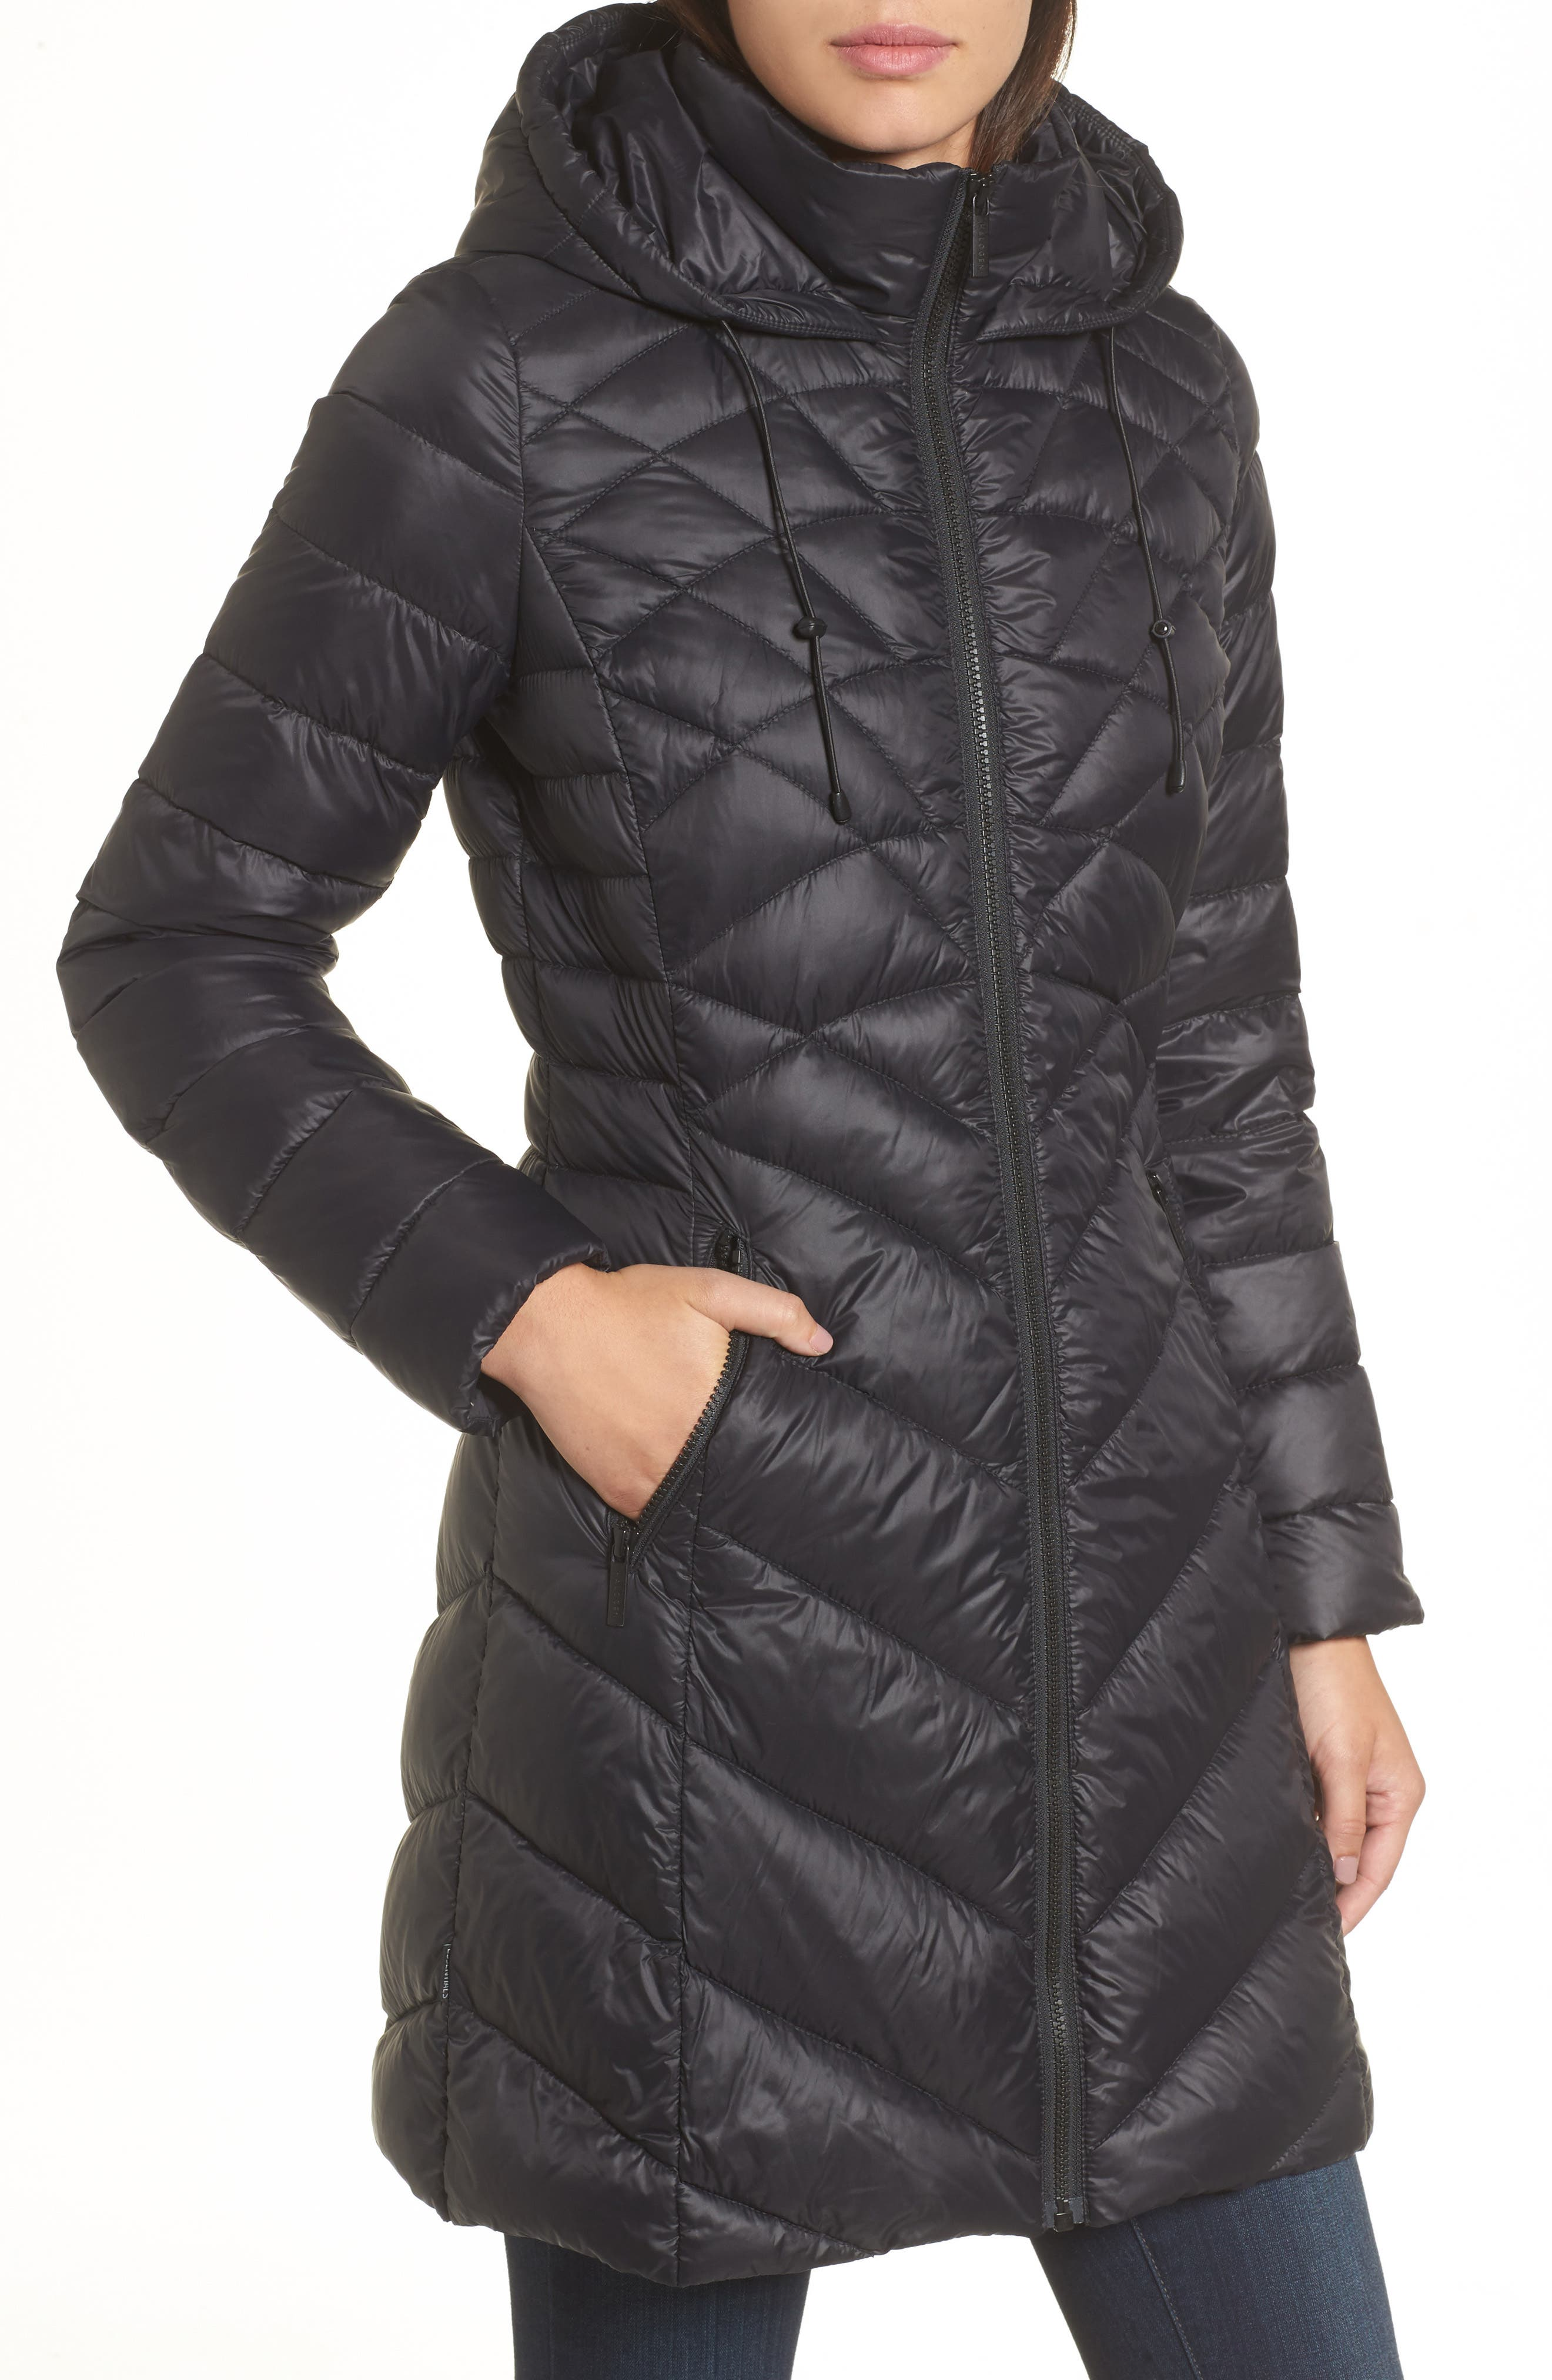 Hooded Down Puffer Jacket,                             Alternate thumbnail 4, color,                             001